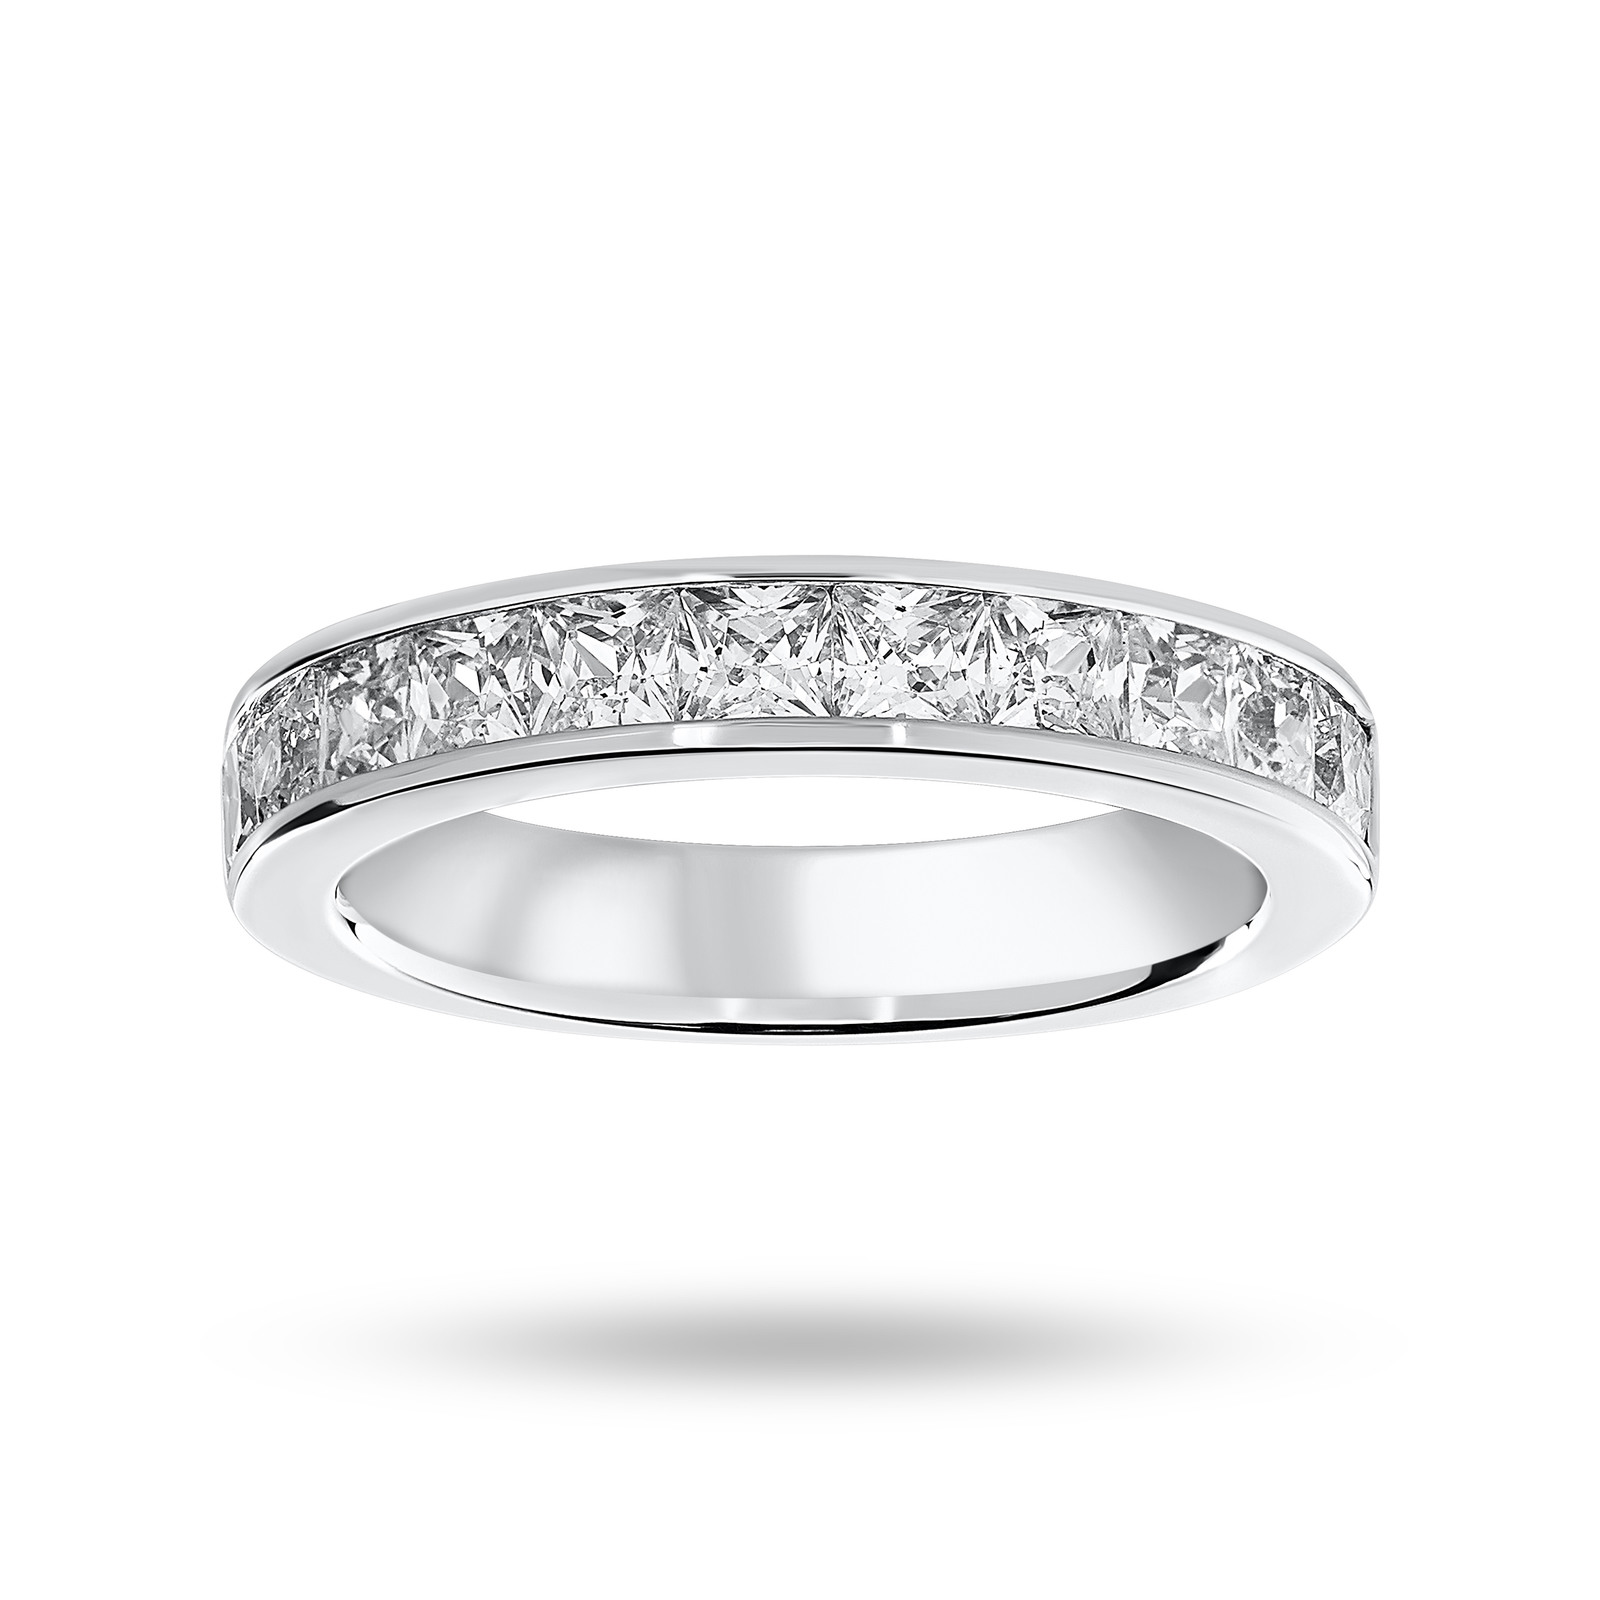 18 Carat White Gold 1.50 Carat Princess Cut Half Eternity Ring